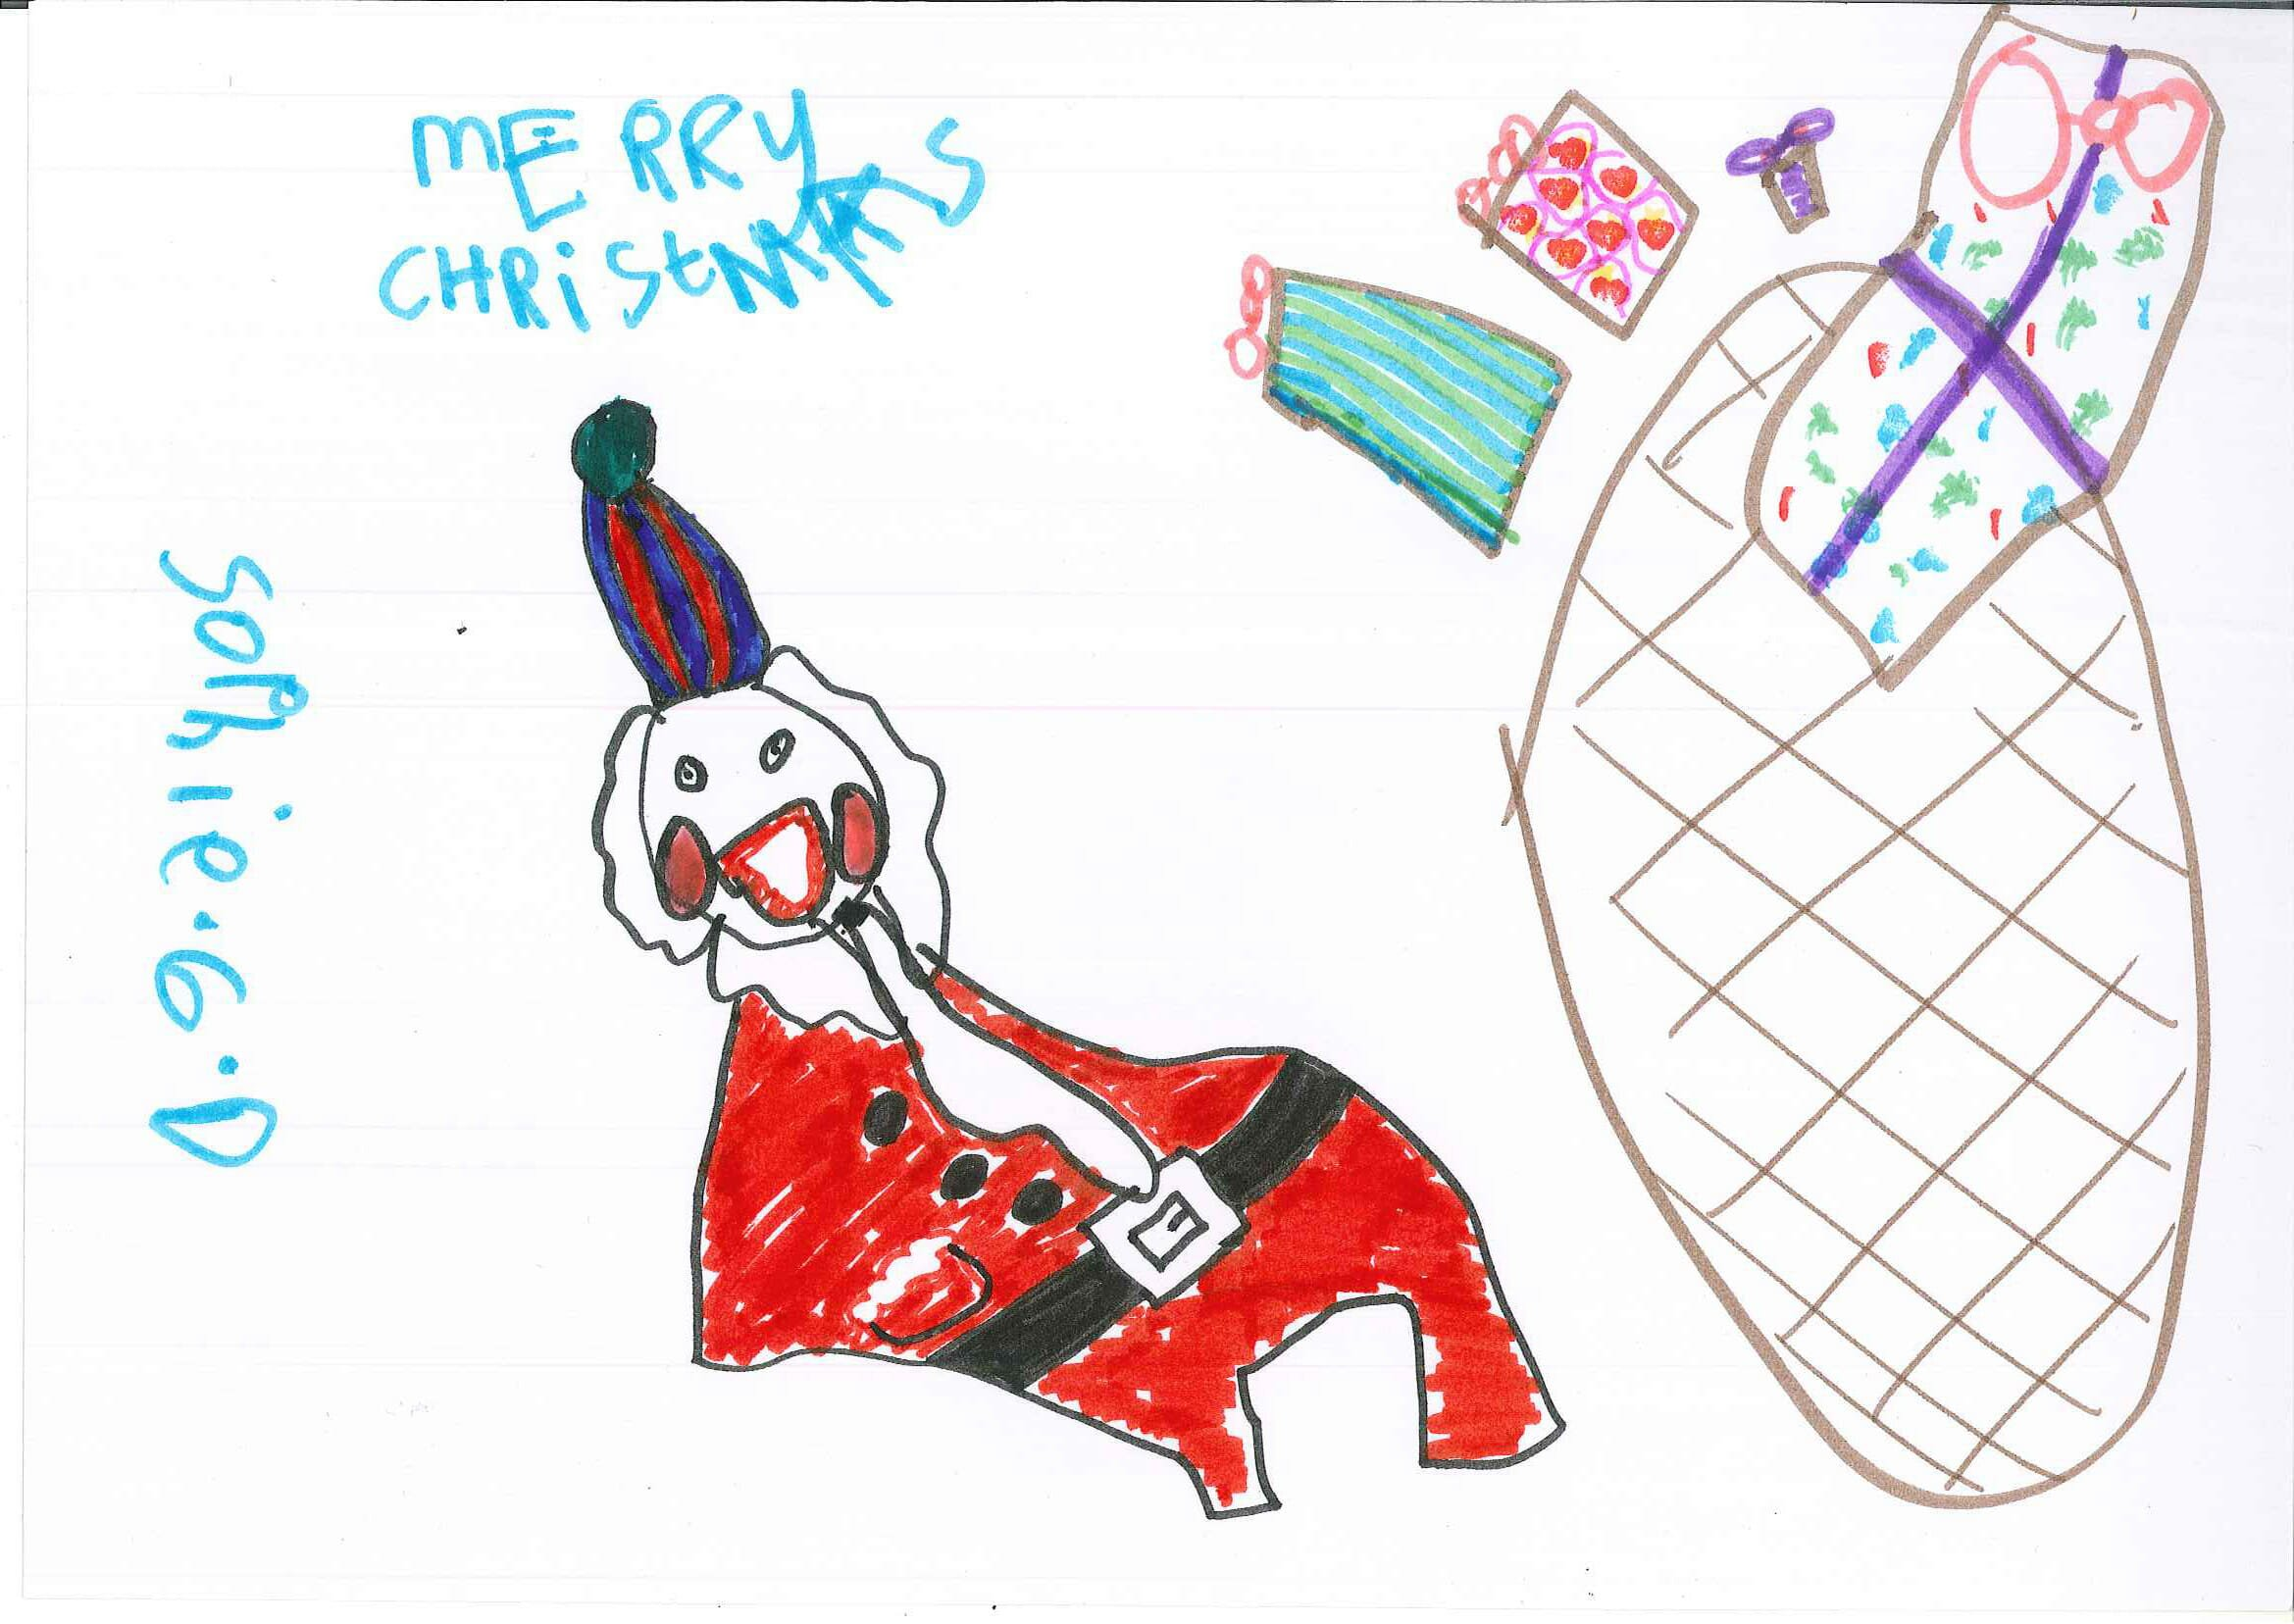 CHECT Christmas card competition - Sophie